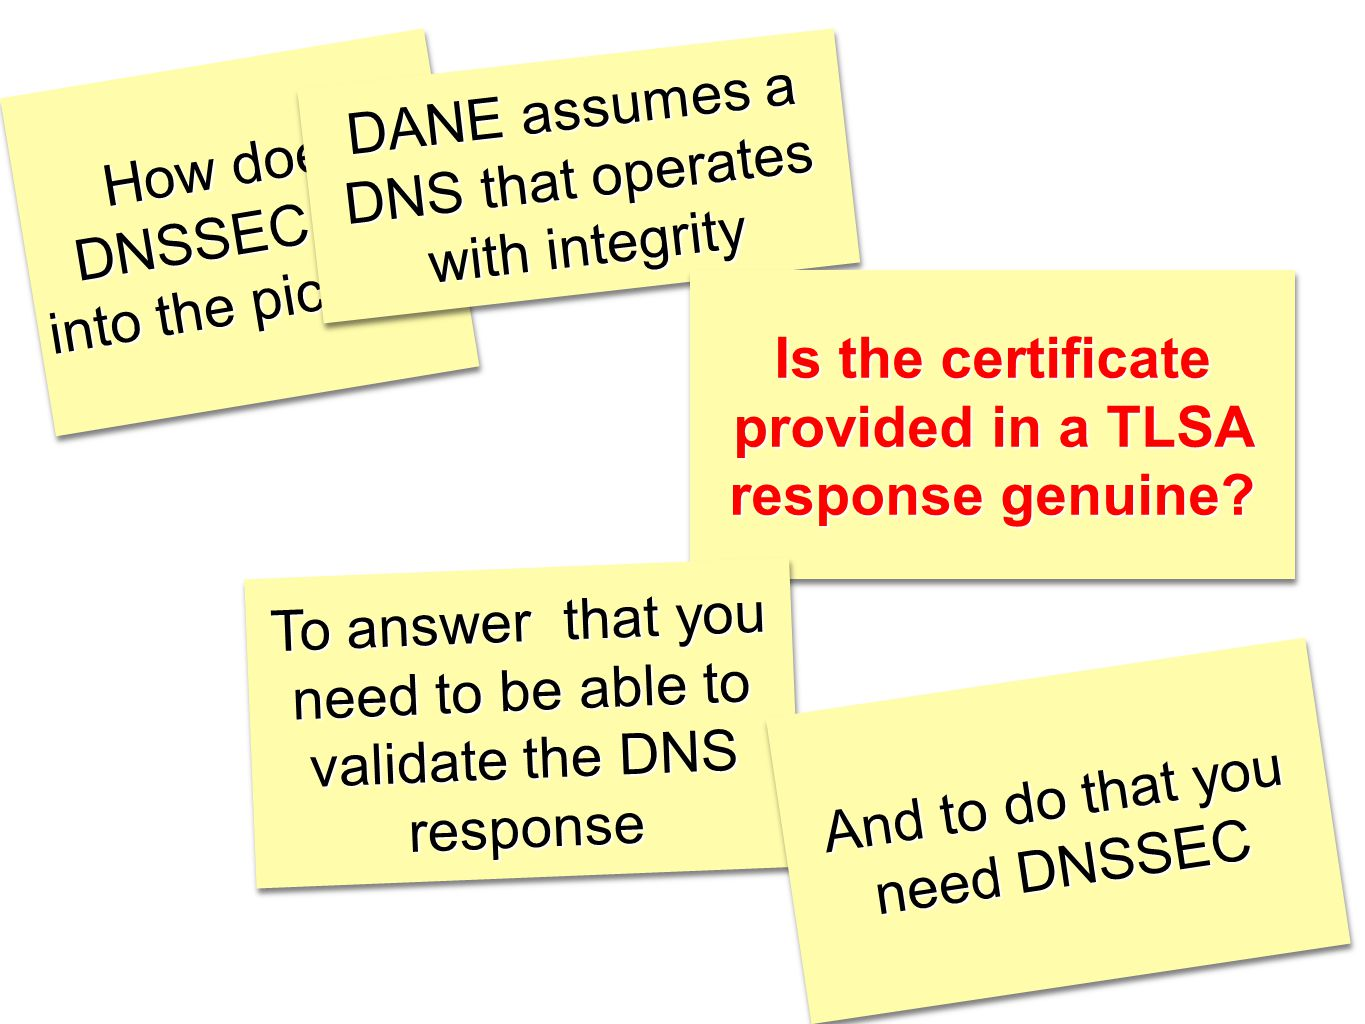 DANE assumes a DNS that operates with integrity Is the certificate provided in a TLSA response genuine? To answer that you need to be able to validate